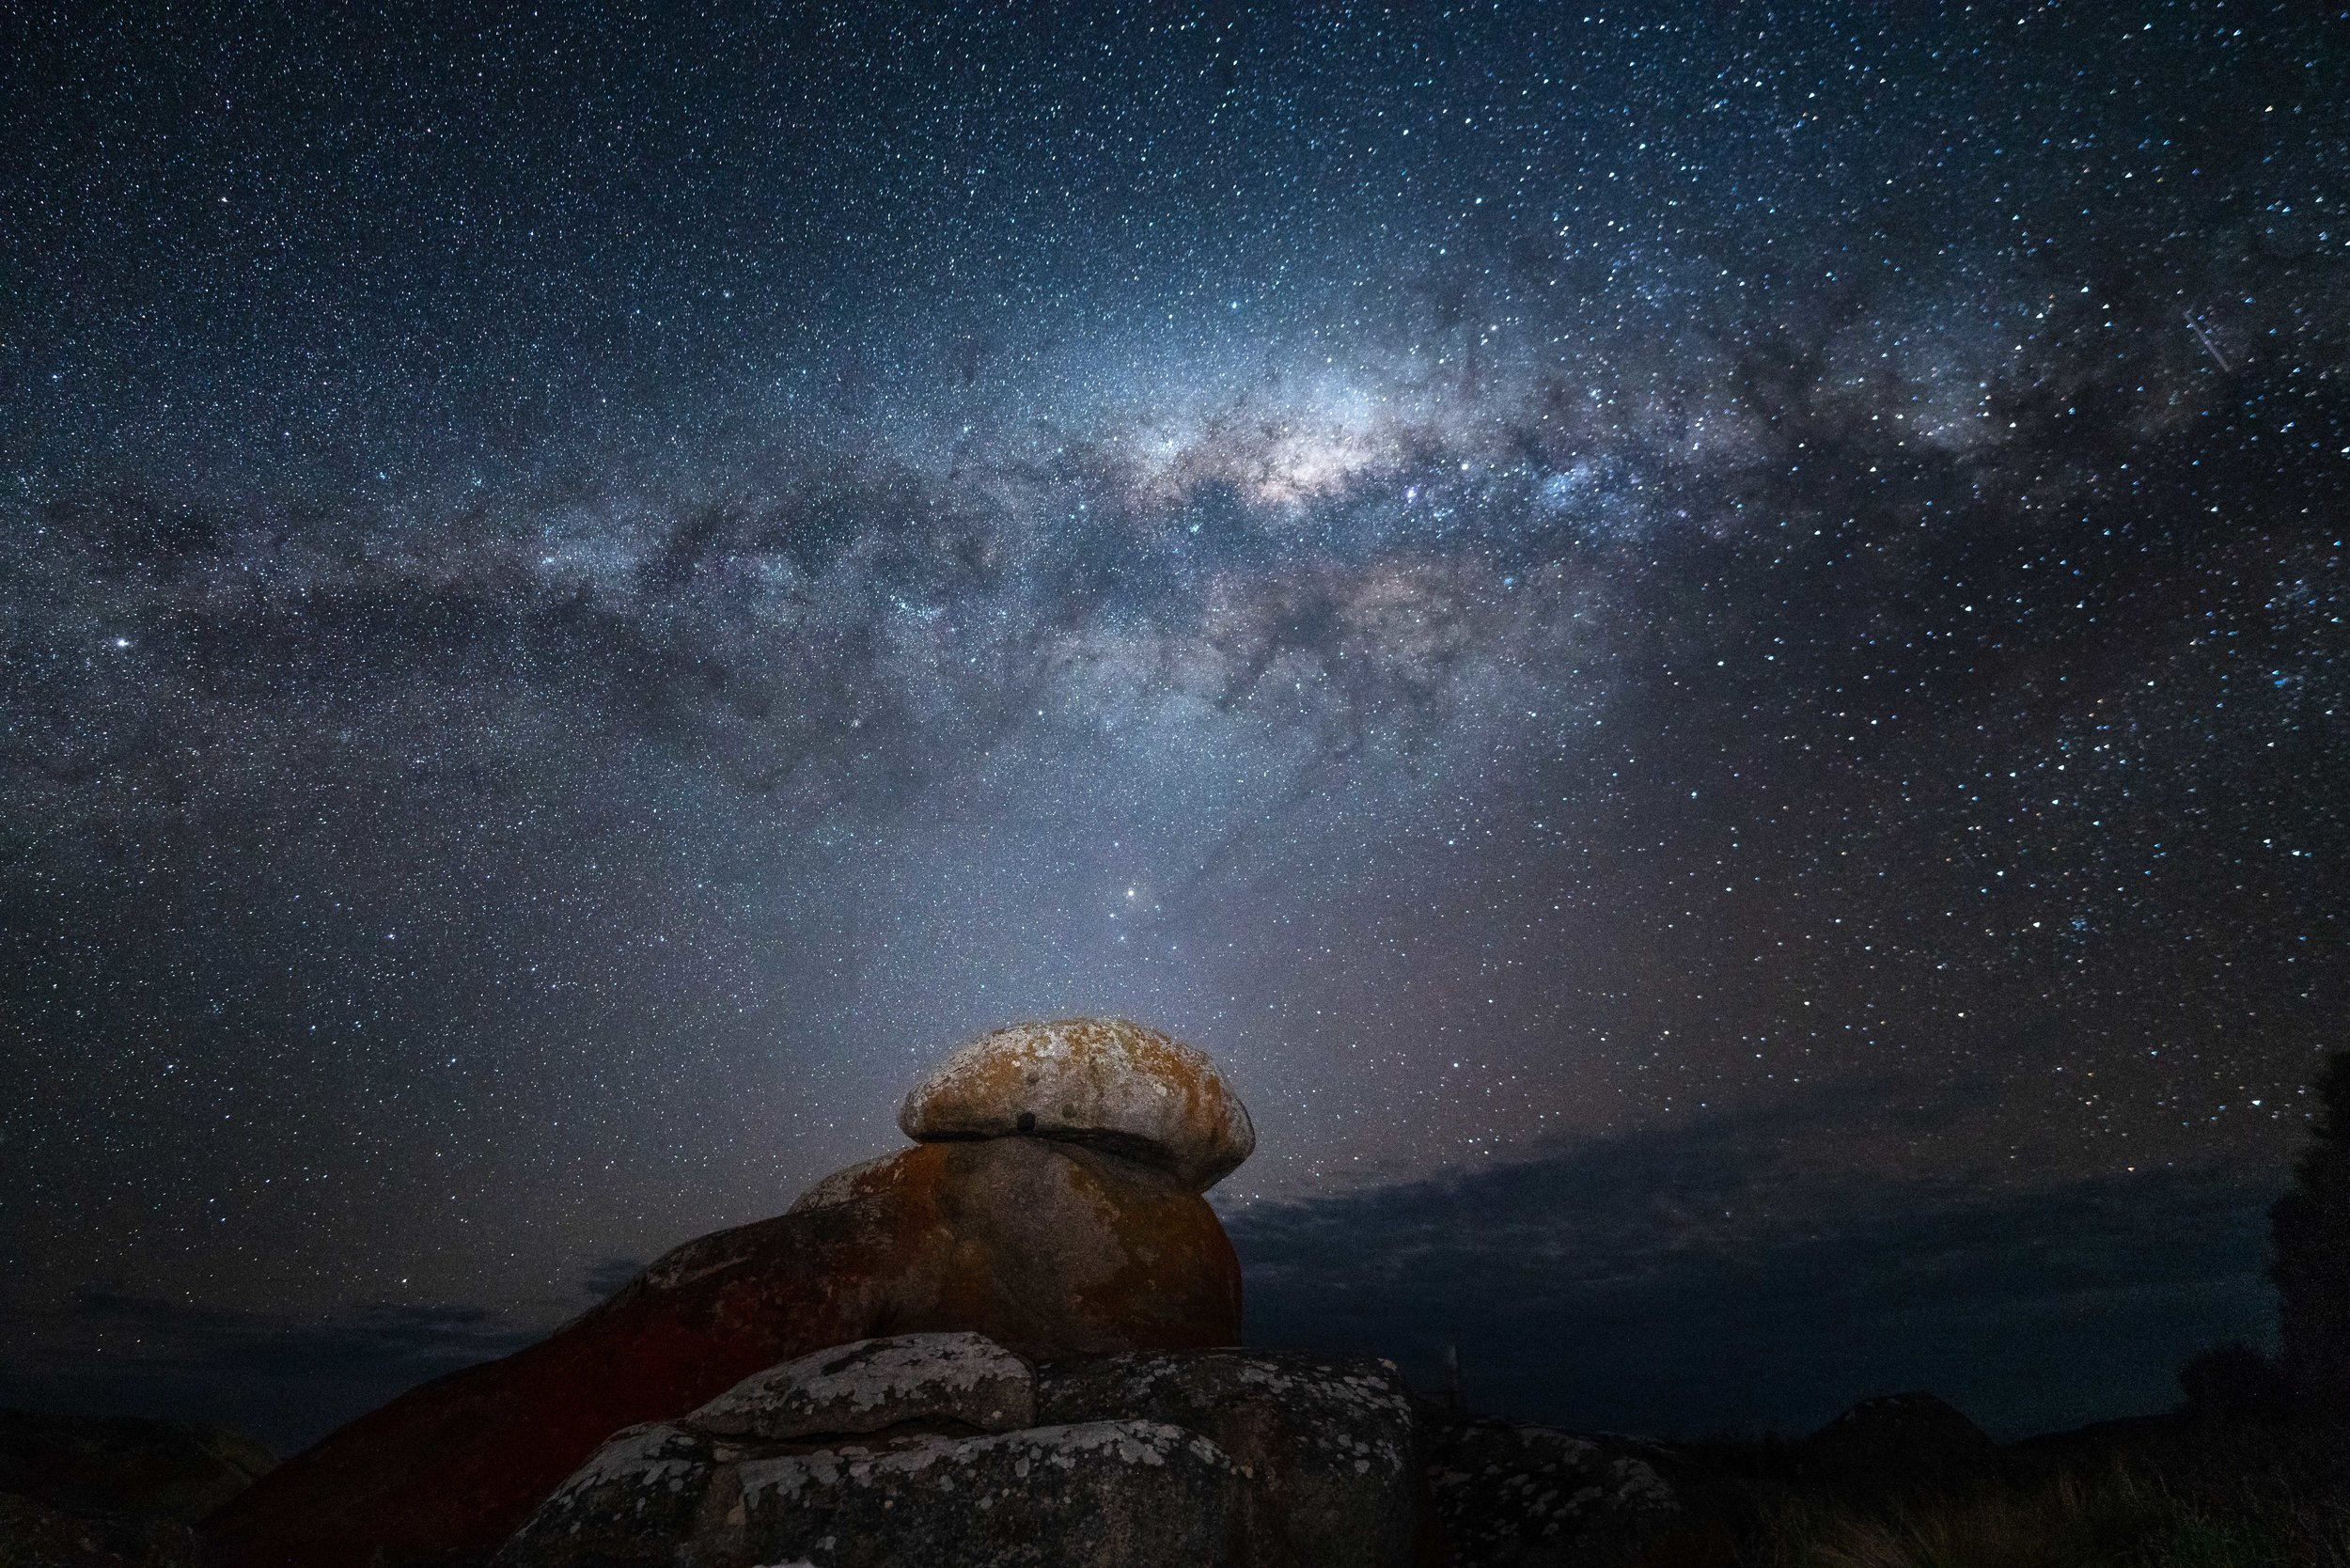 About - Find out about Dark Sky Tasmania,our mission, objectives, and why a naturally dark sky is good for Tasmania.